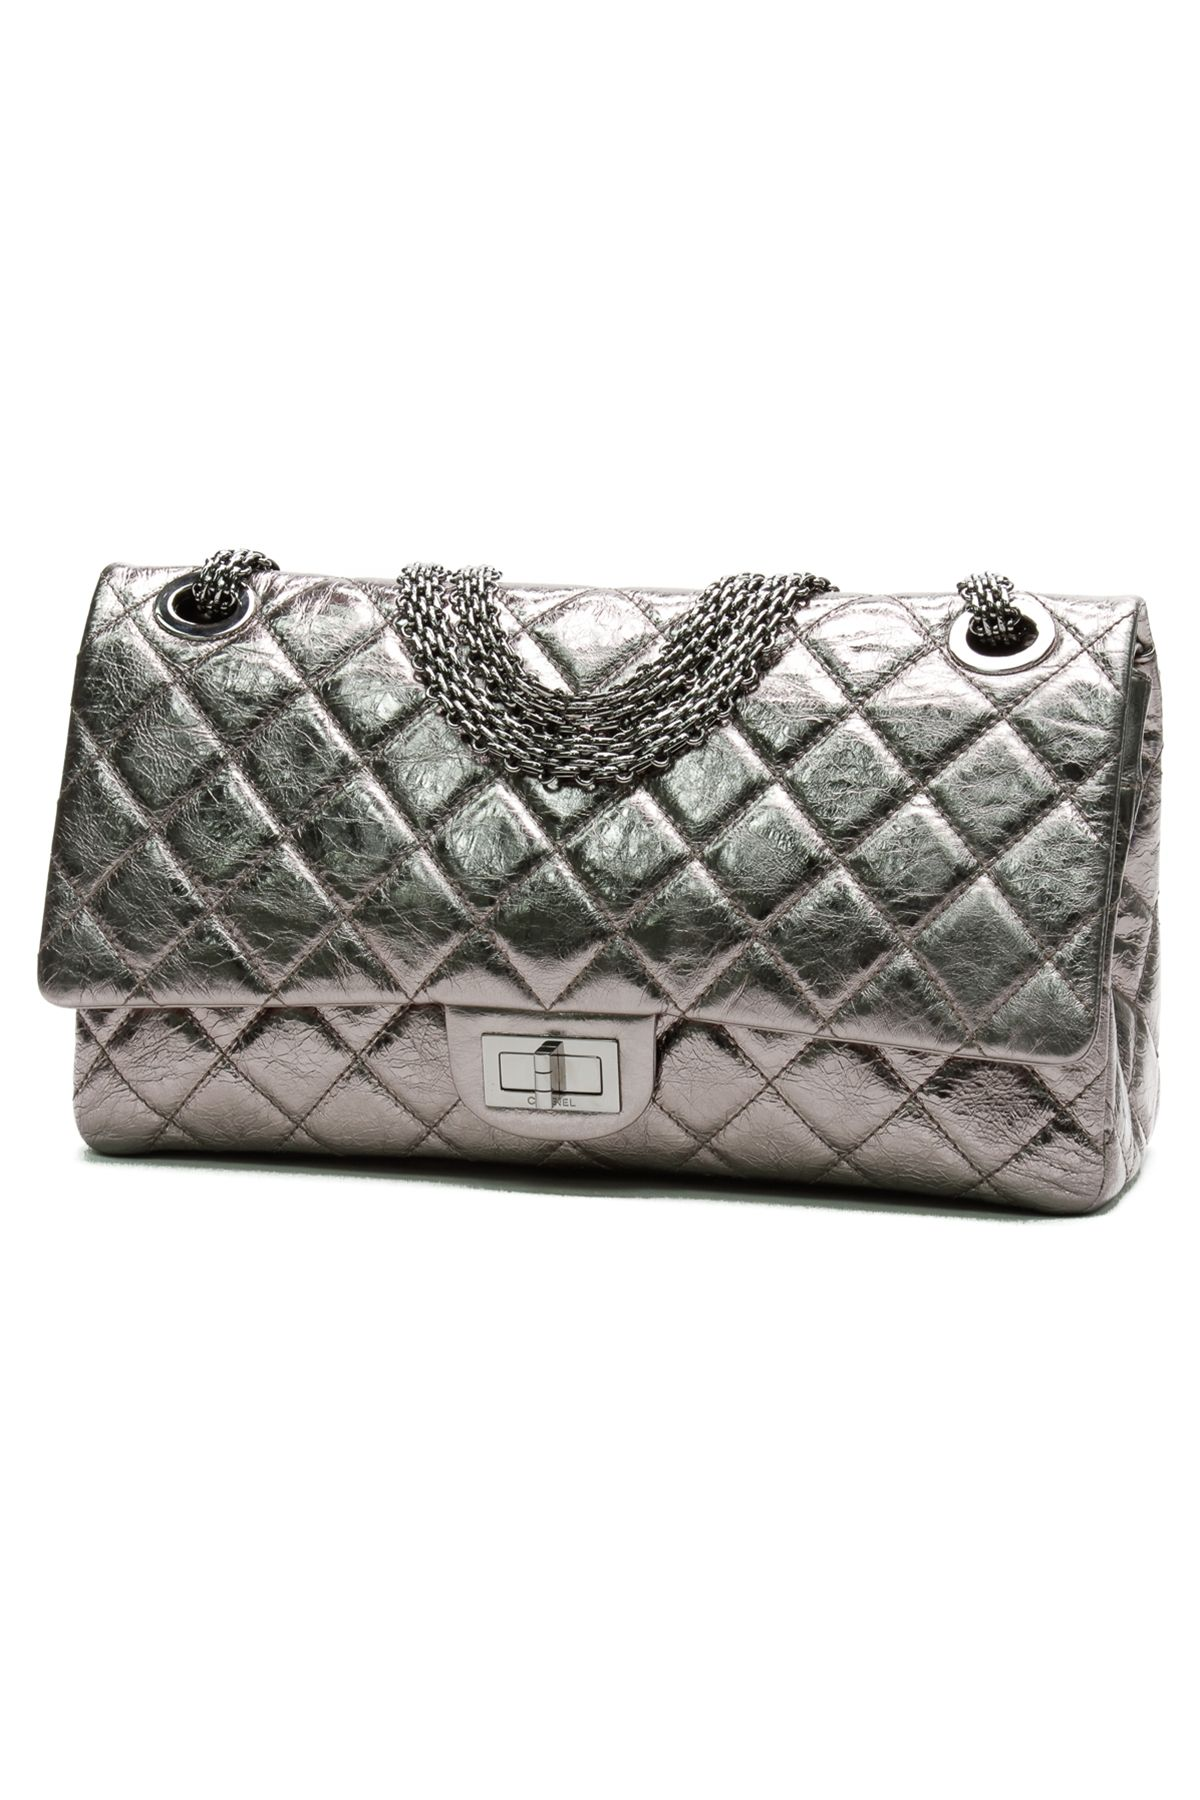 bf4a91df4811 Chanel Metallic Silver Calfskin Reissue 228 Flap Handbag | Put The ...